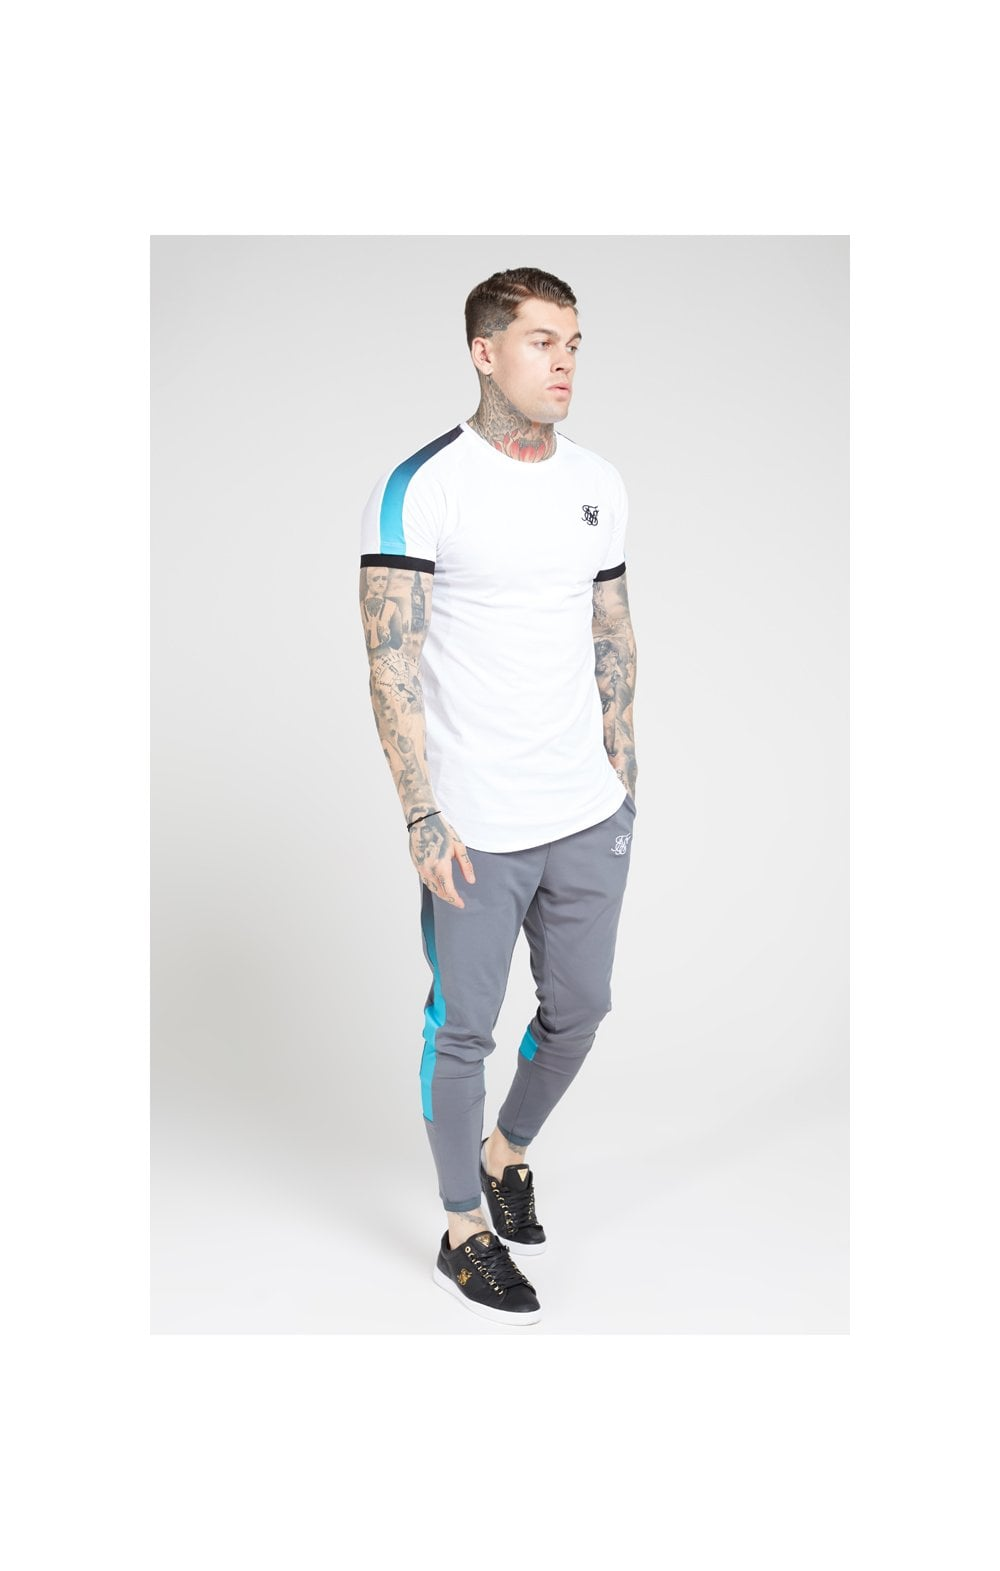 SikSilk S/S Inset Cuff Fade Panel Tech Tee – White, Black & Teal (3)